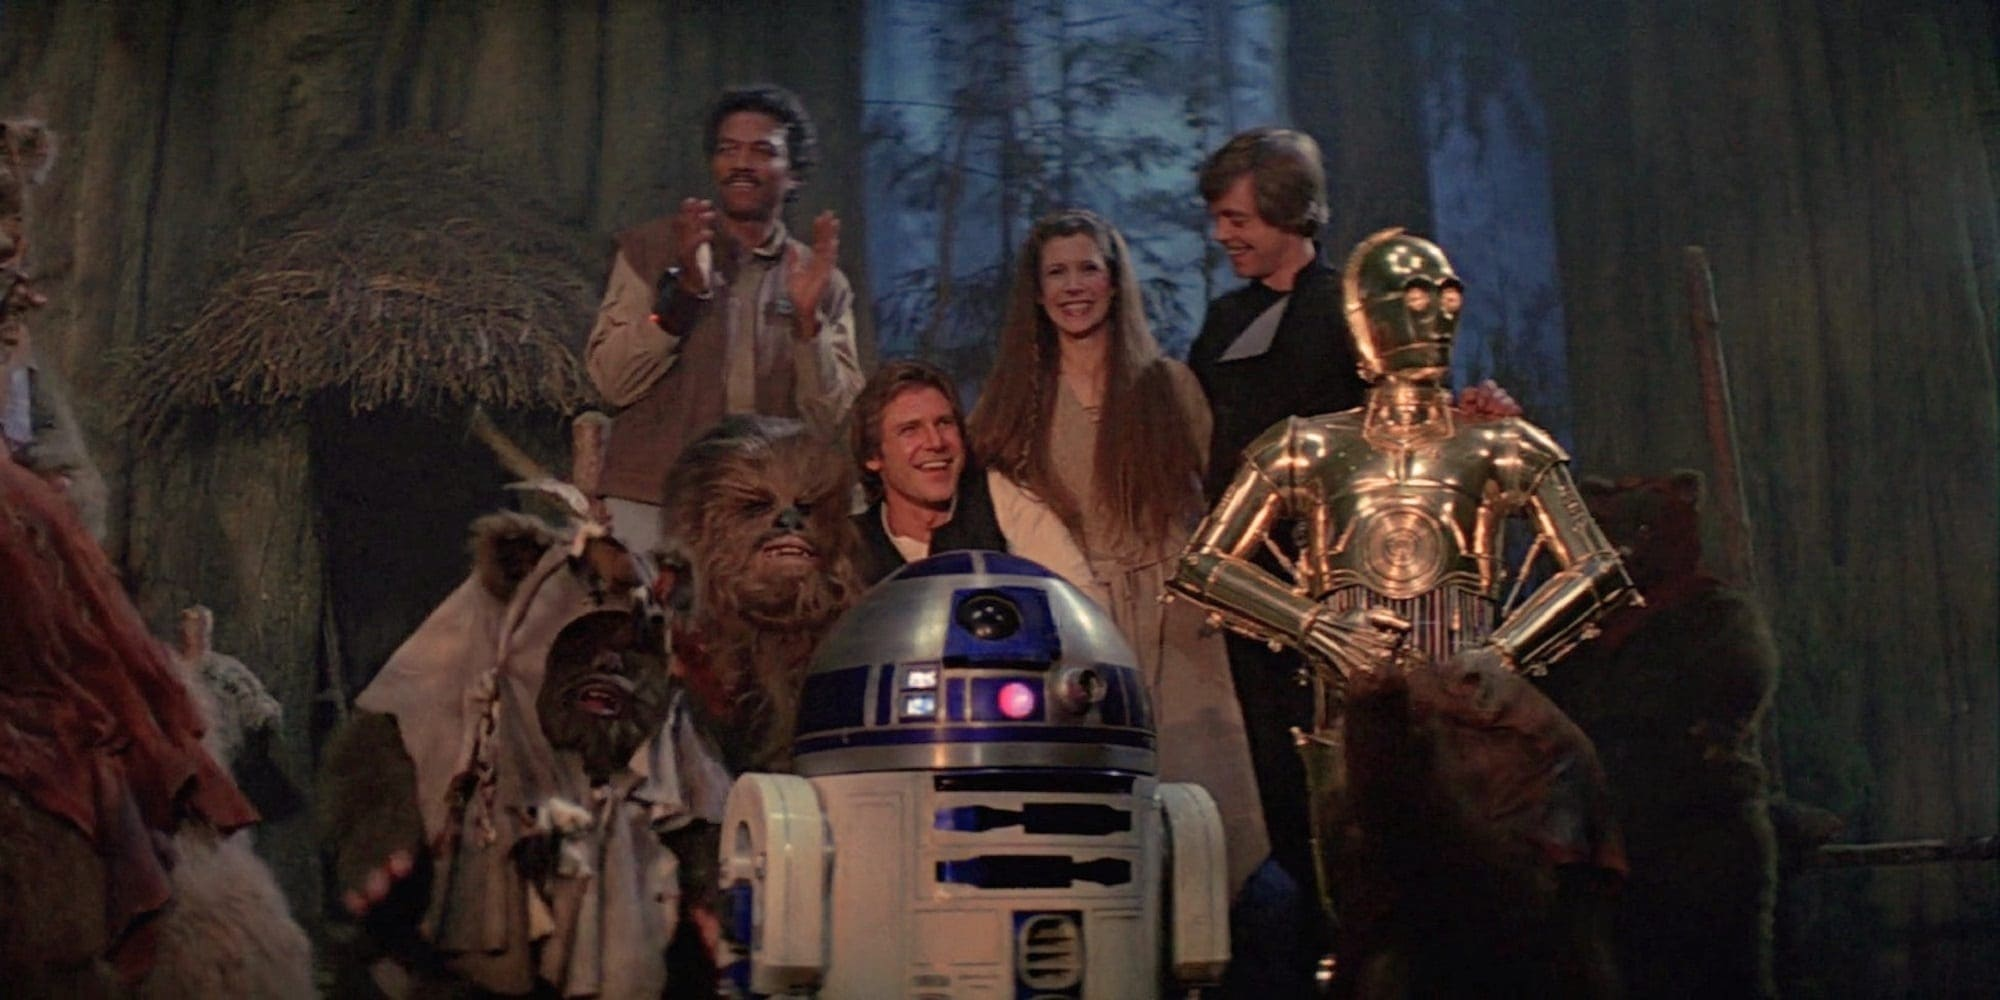 US Election Return of the Jedi celebrations Featured screengrab